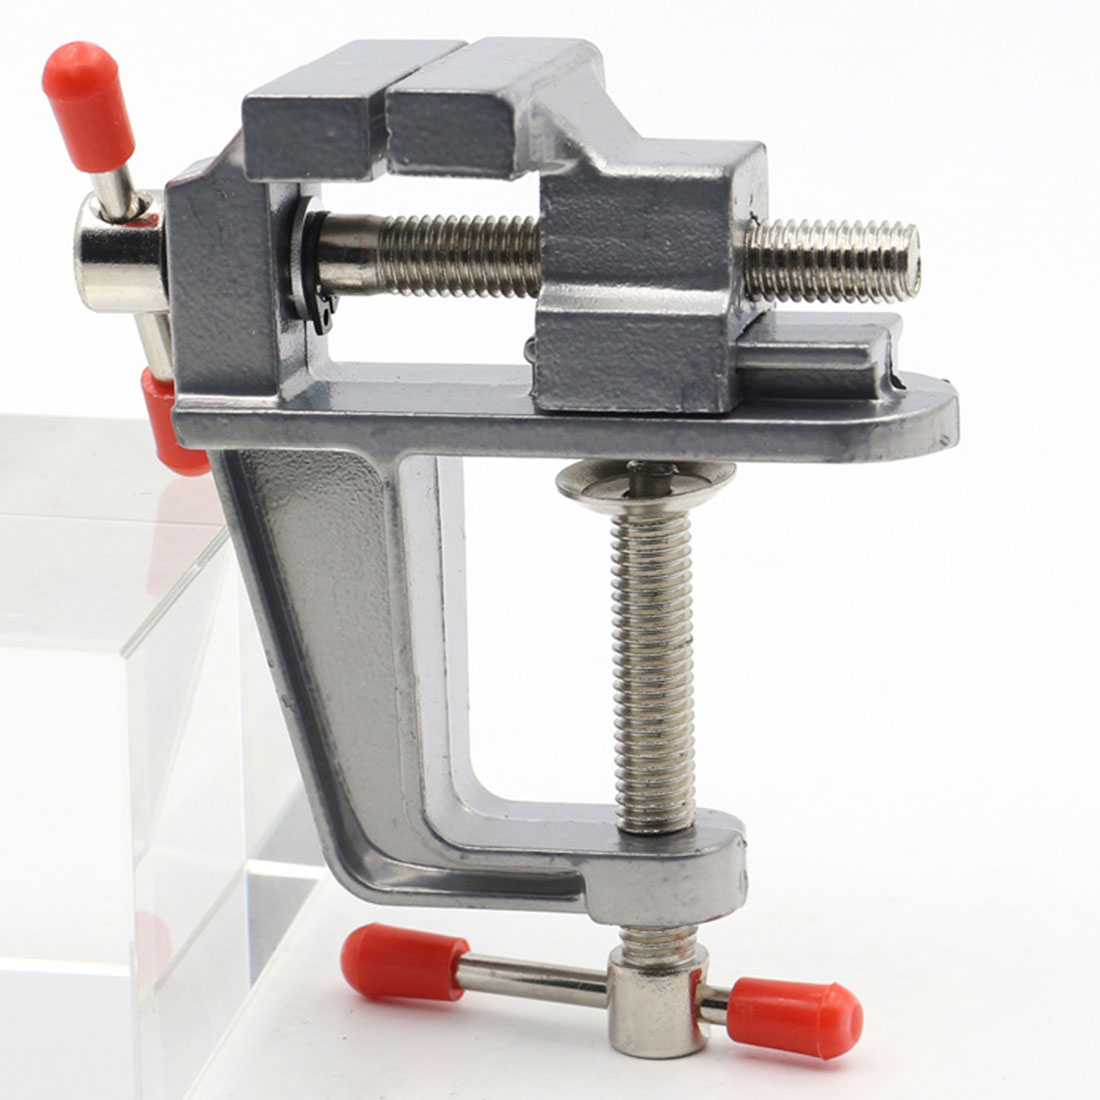 Mini Tool Vice 30mm Clamp Opening Aluminum Small Jewelers Hobby Clamp On Table Bench Vise